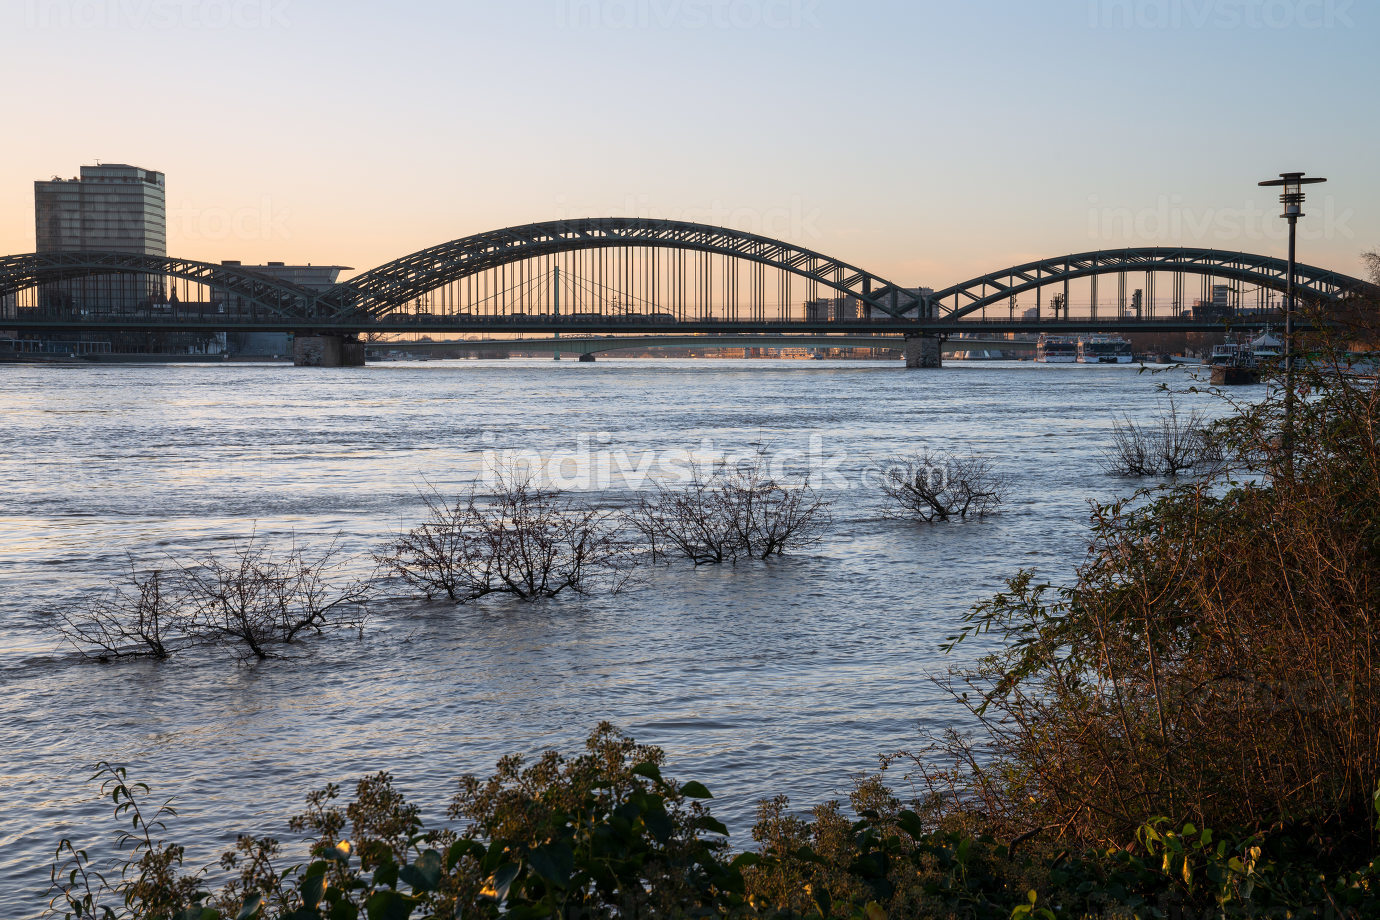 High water on the river Rhine in Cologne, Germany